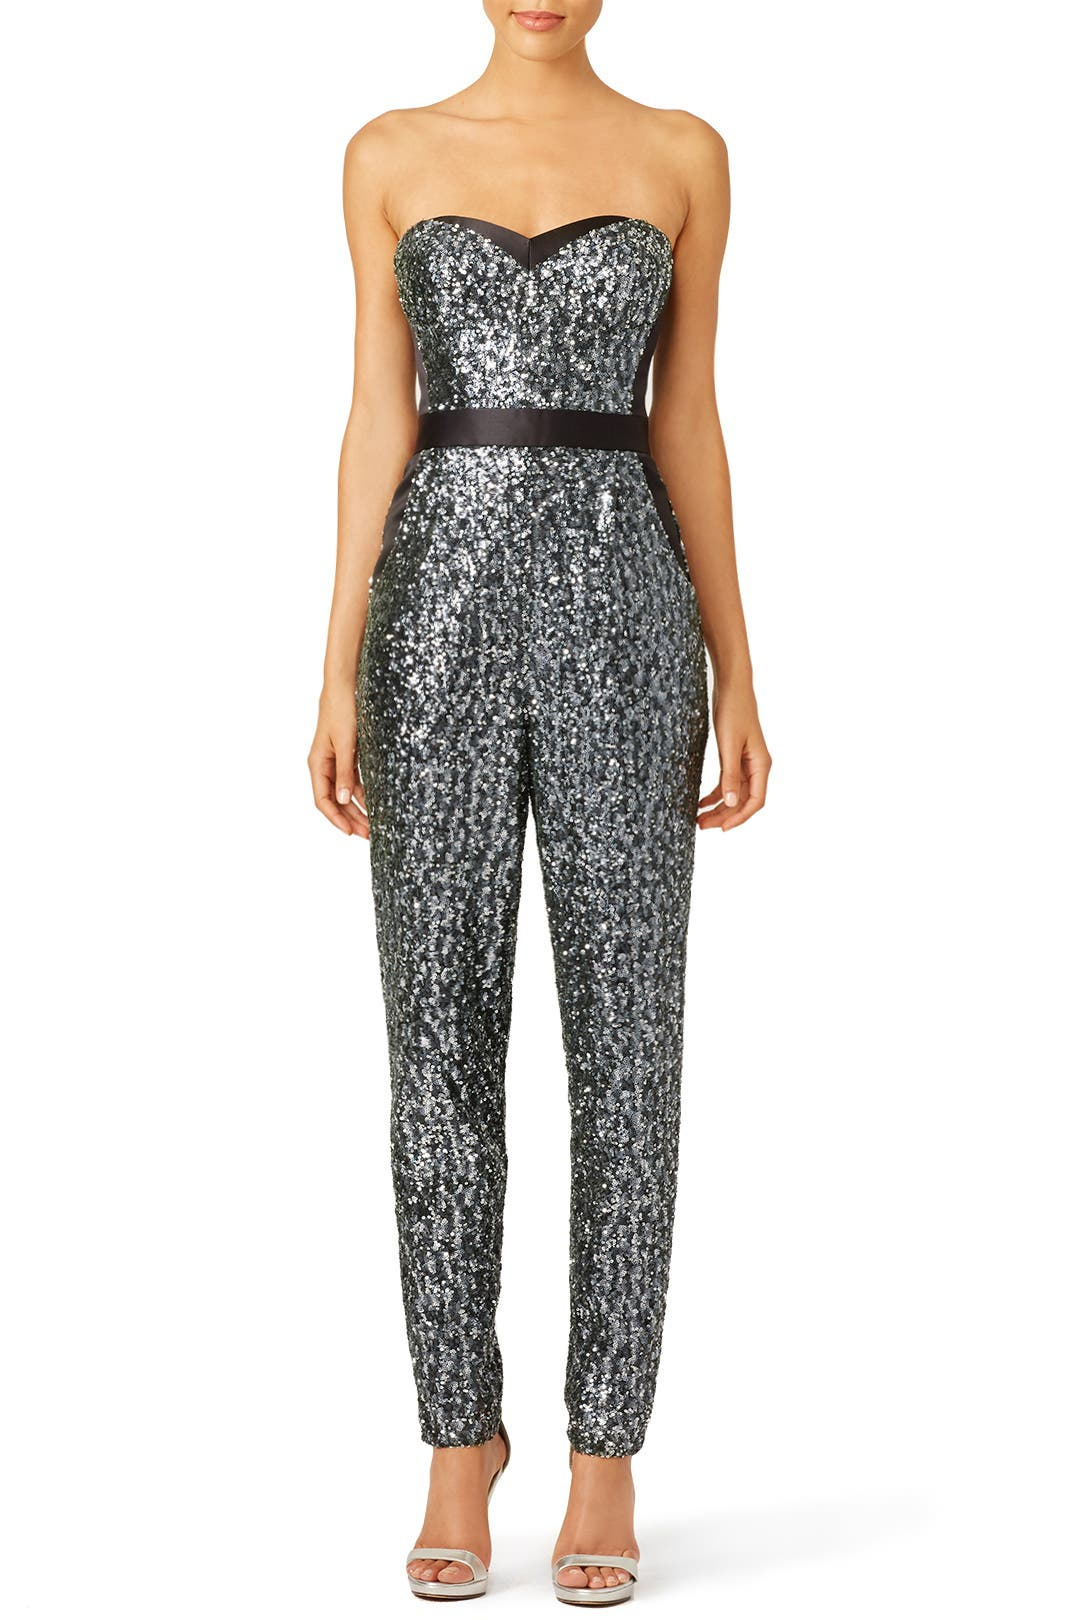 Silver Sequins Bustier Jumpsuit by Milly for $80 - $95 ...